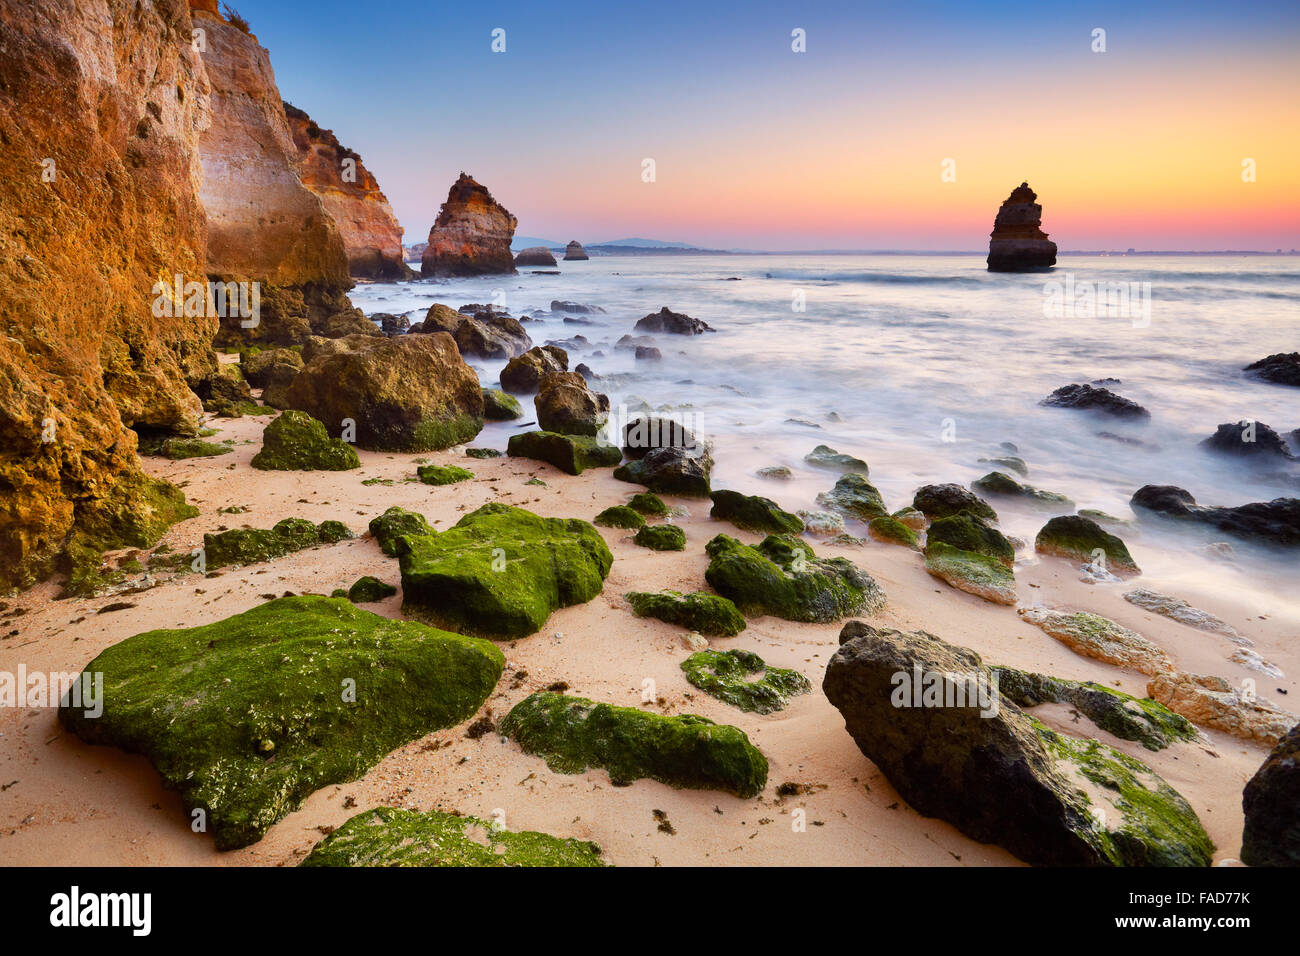 Algarve coast at sunrise near Lagos, Algarve, Portugal - Stock Image